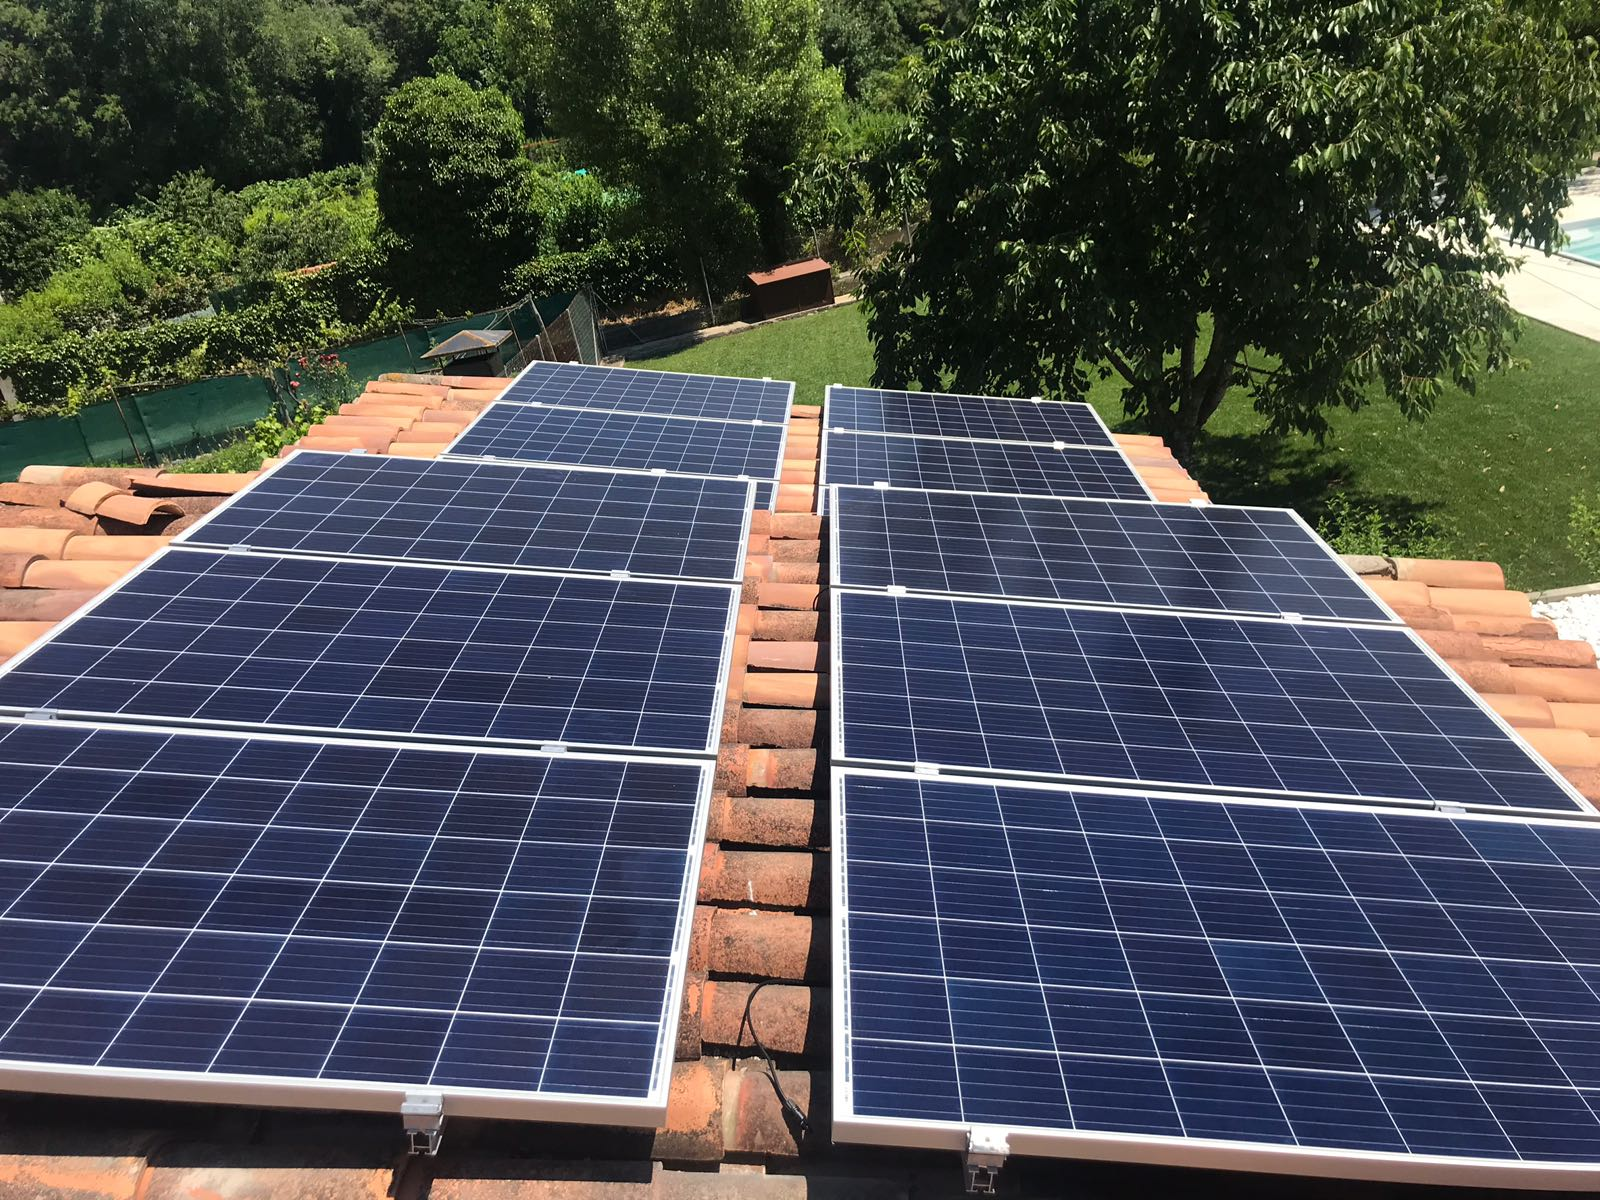 Photovoltaic installations - Photovoltaic modules